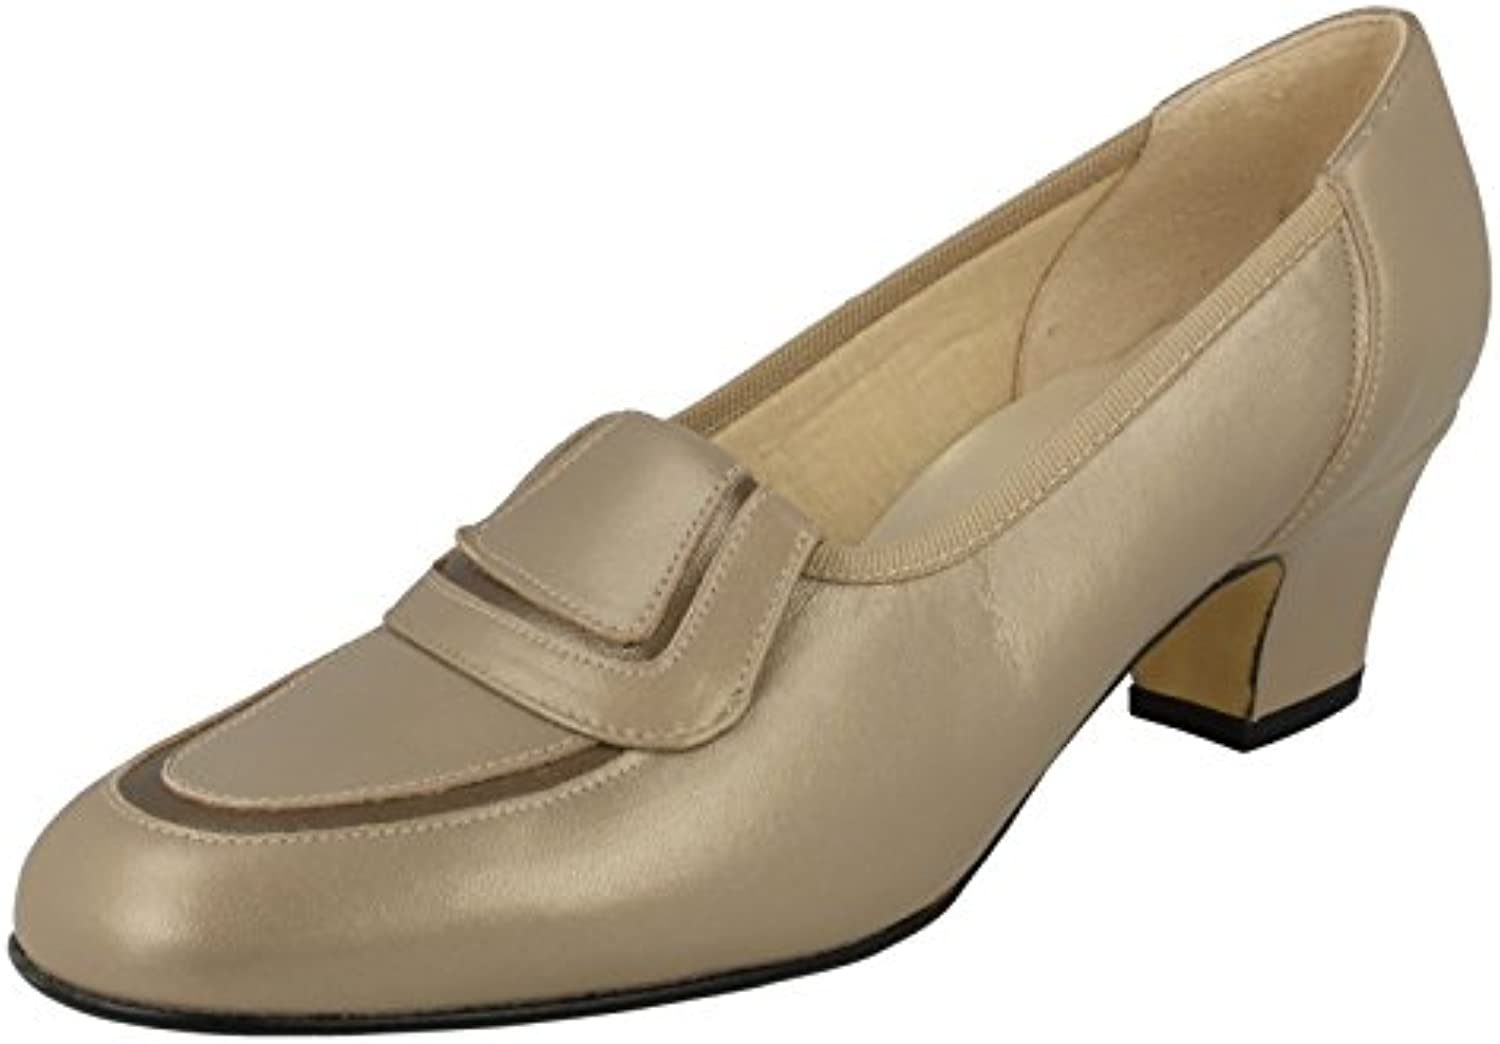 49c65223d9 Nil Simile Ladies Narrow Fitting Court Shoe Buoyant B07FMTZCVD Parent  Parent Parent 292074